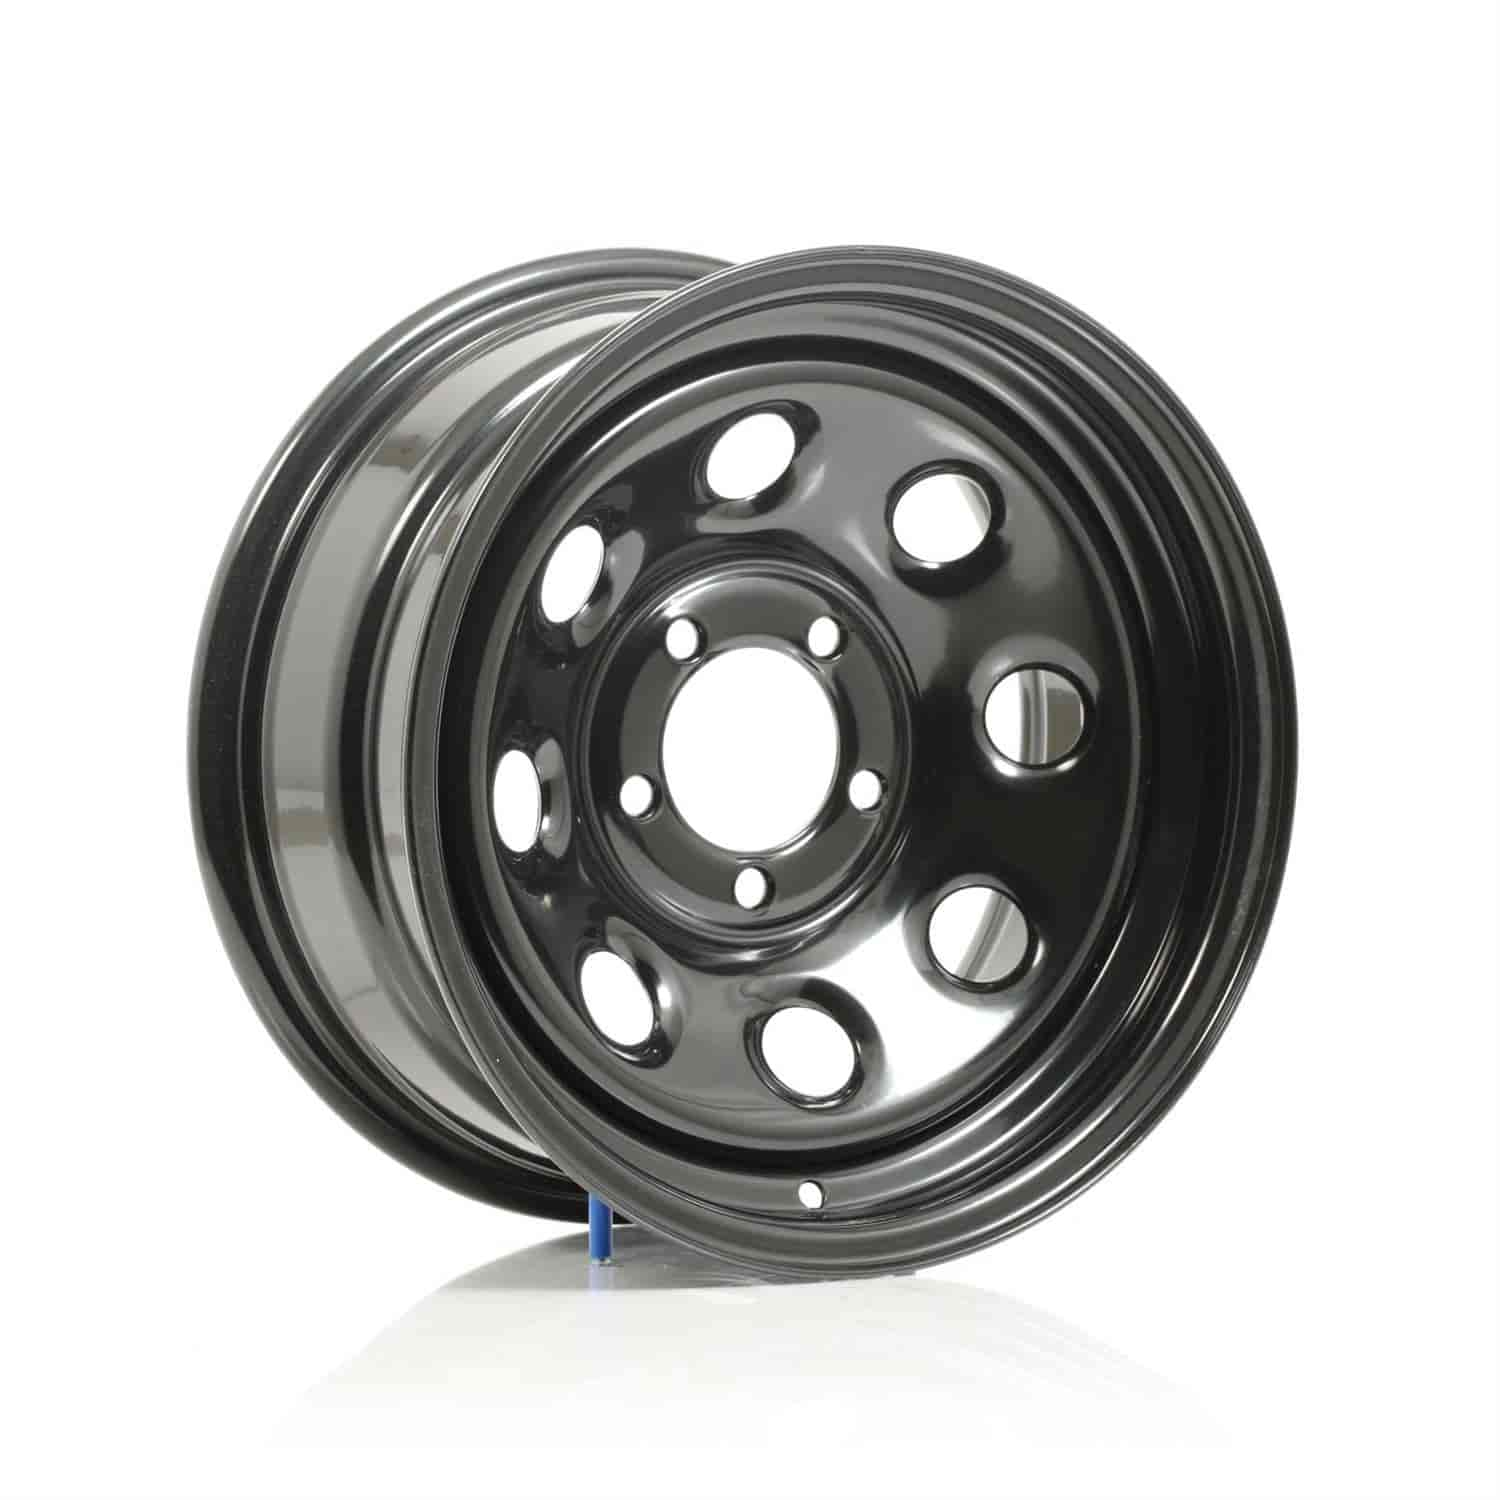 Cragar 3977760 - Cragar Black Soft 8 Wheels